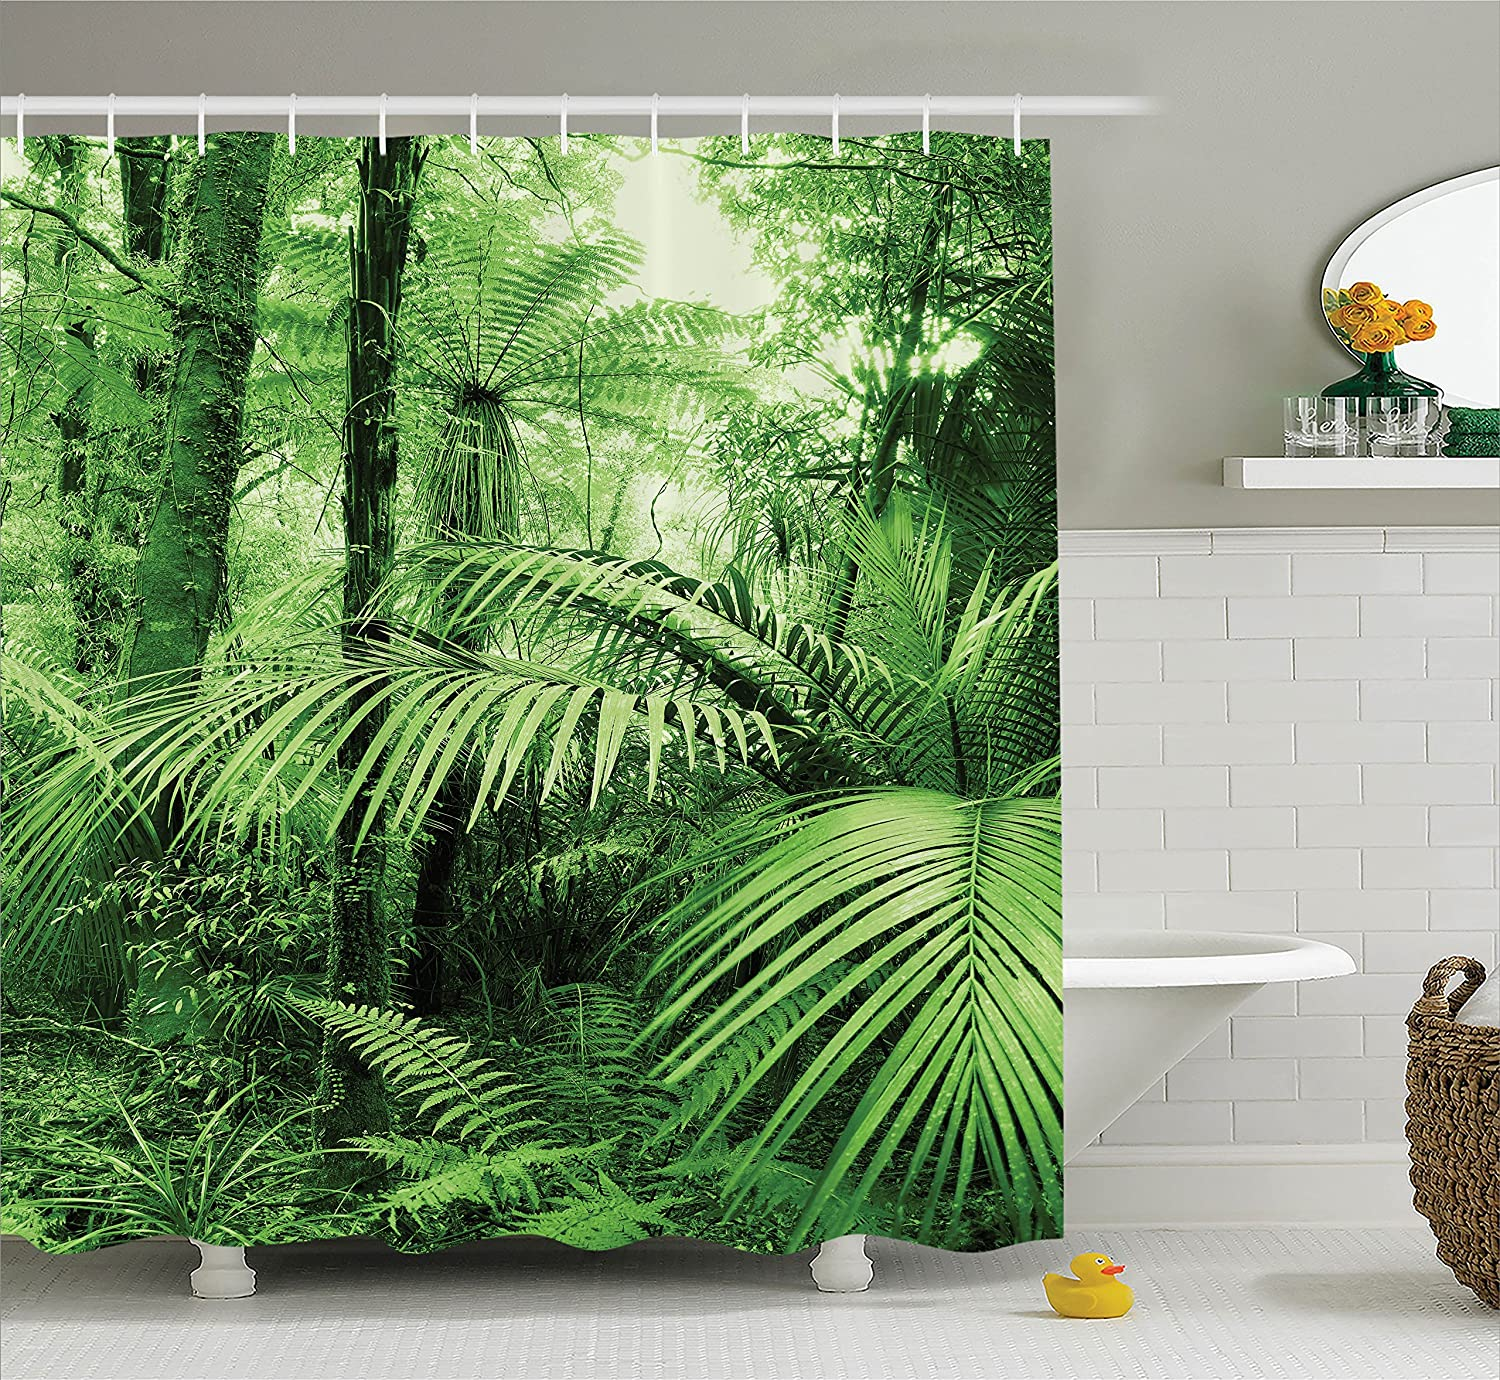 Ambesonne Rainforest Decorations Shower Curtain Set, Palm Trees and Exotic Plants in Tropical Jungle Wild Nature Zen Theme Illustration, Bathroom Accessories, 69W X 70L Inches, Green